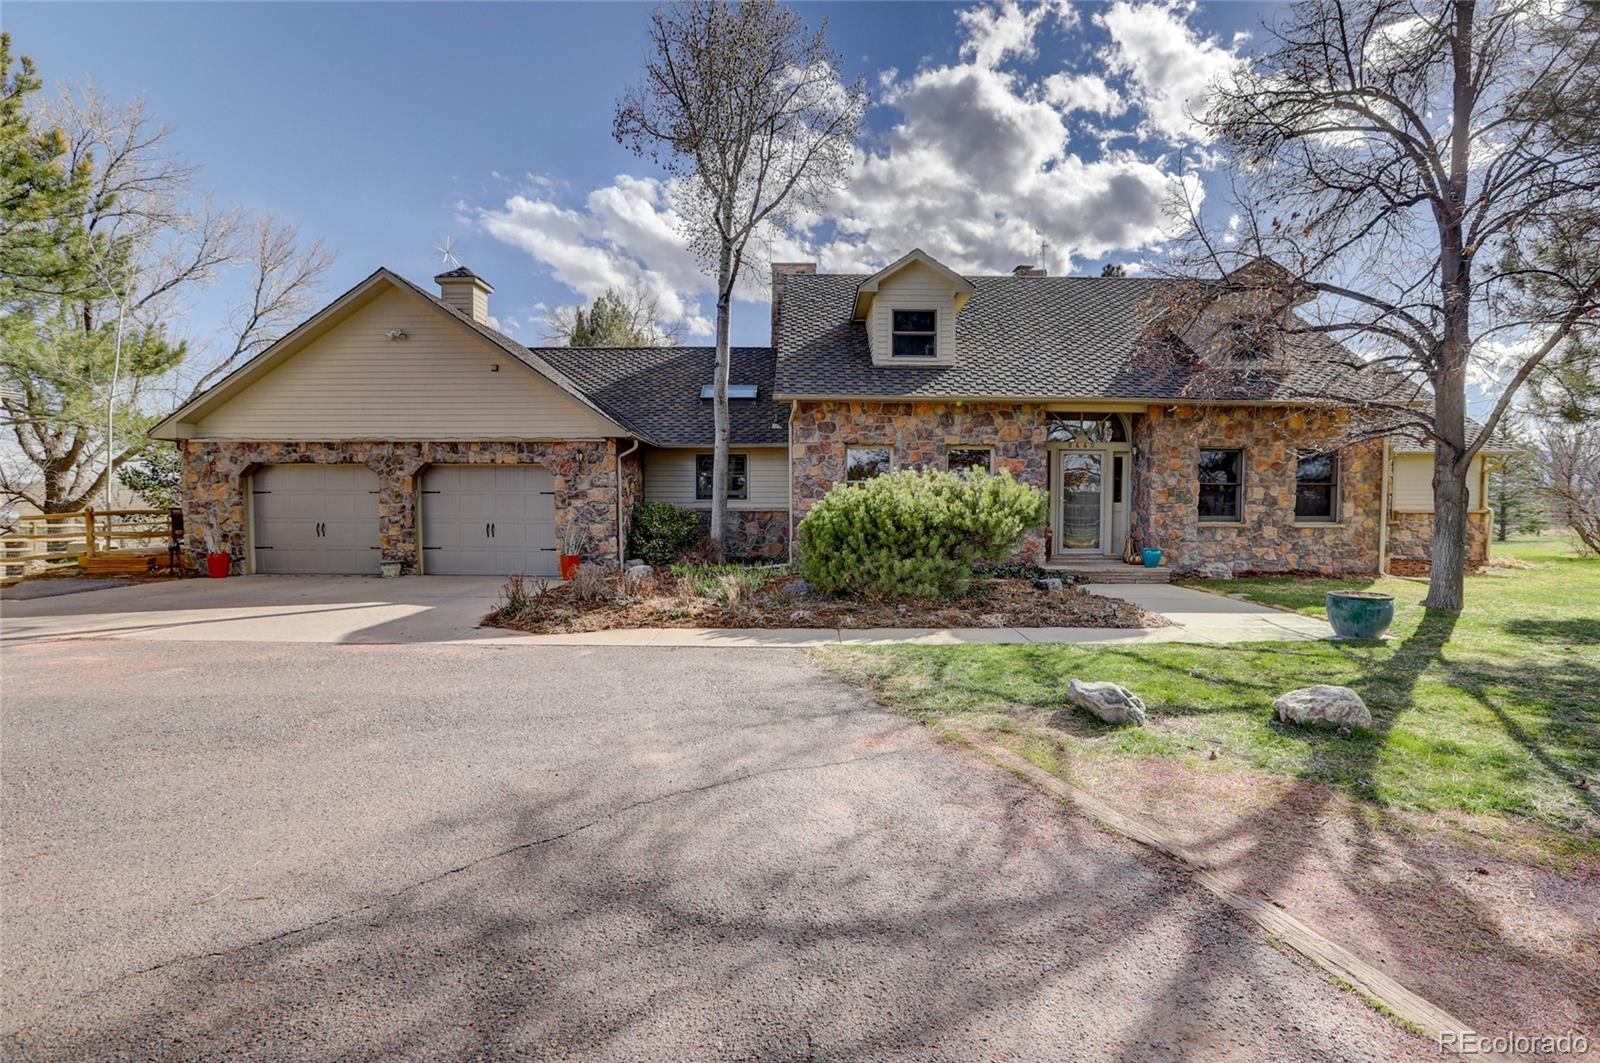 MLS# 6517499 - 1 - 8440 Valmont Road, Boulder, CO 80301